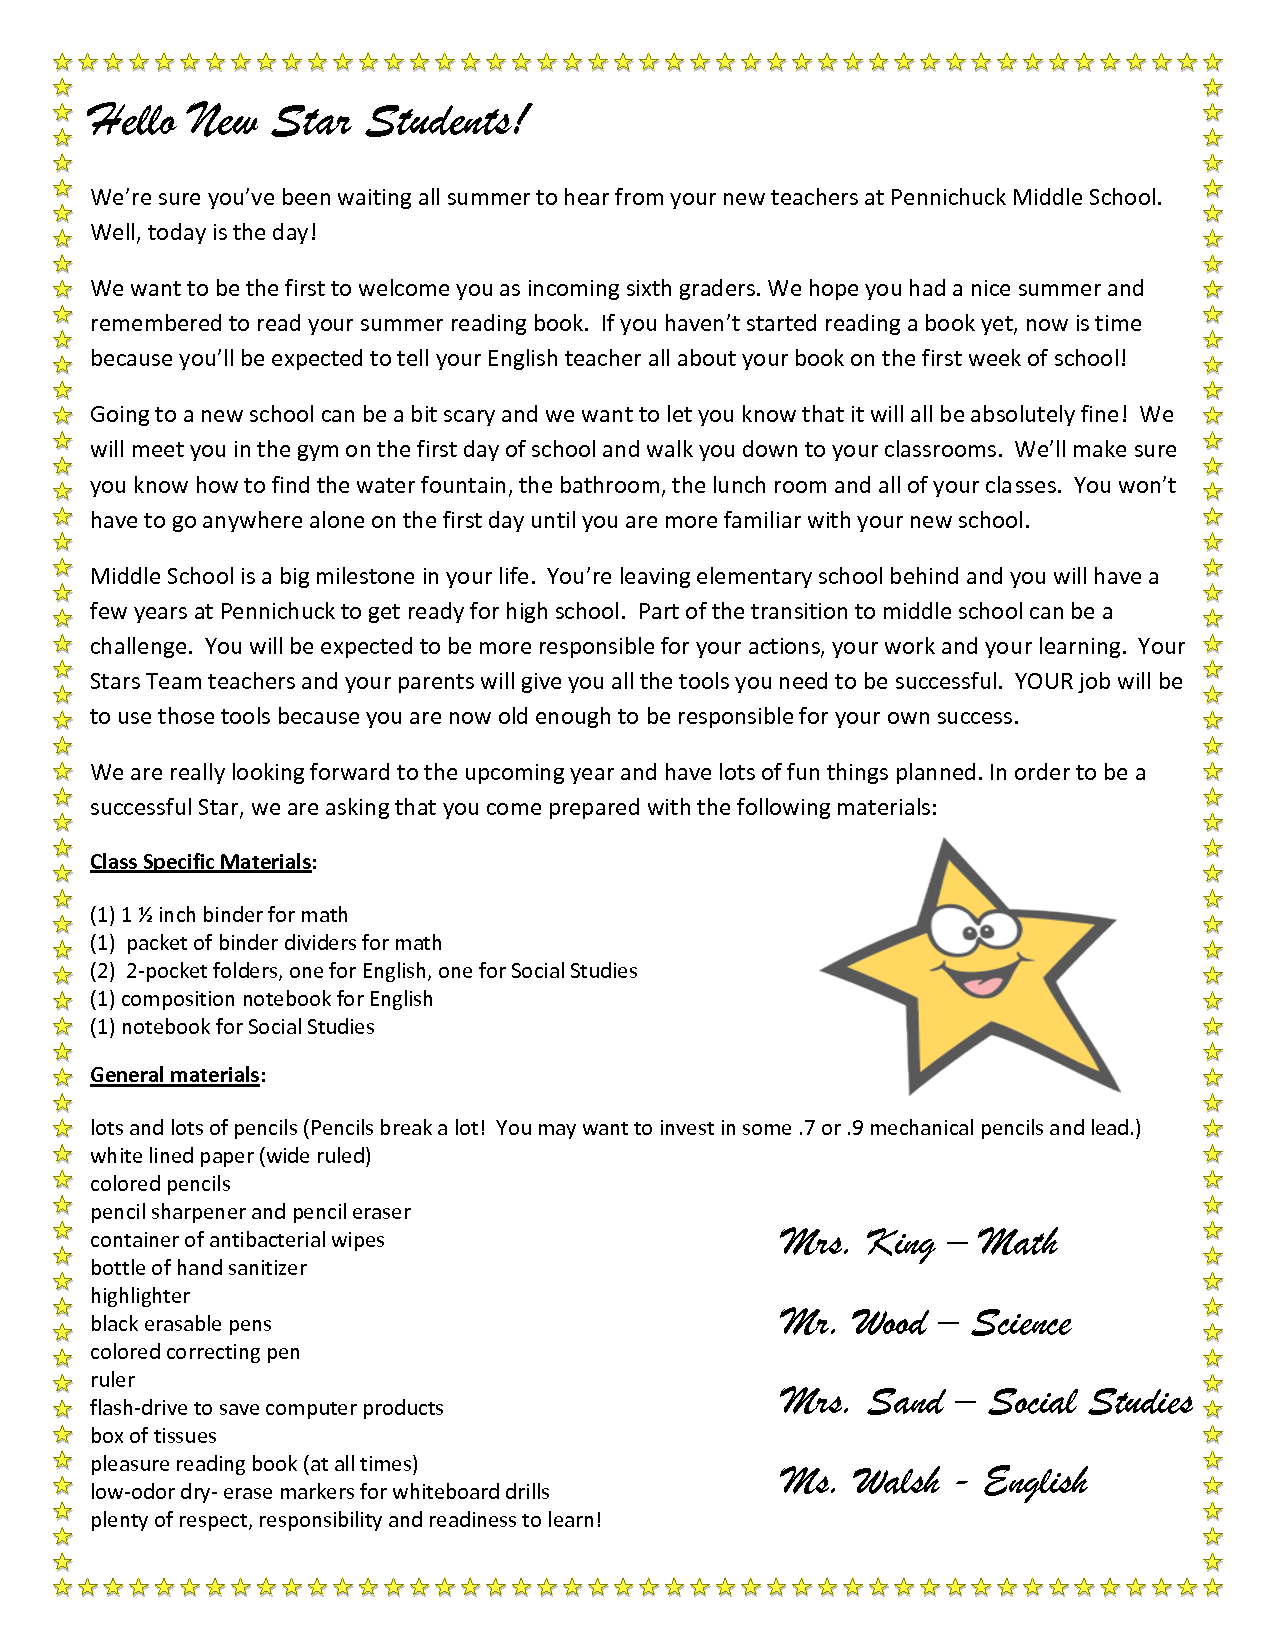 Teacher Welcome Letter To Students